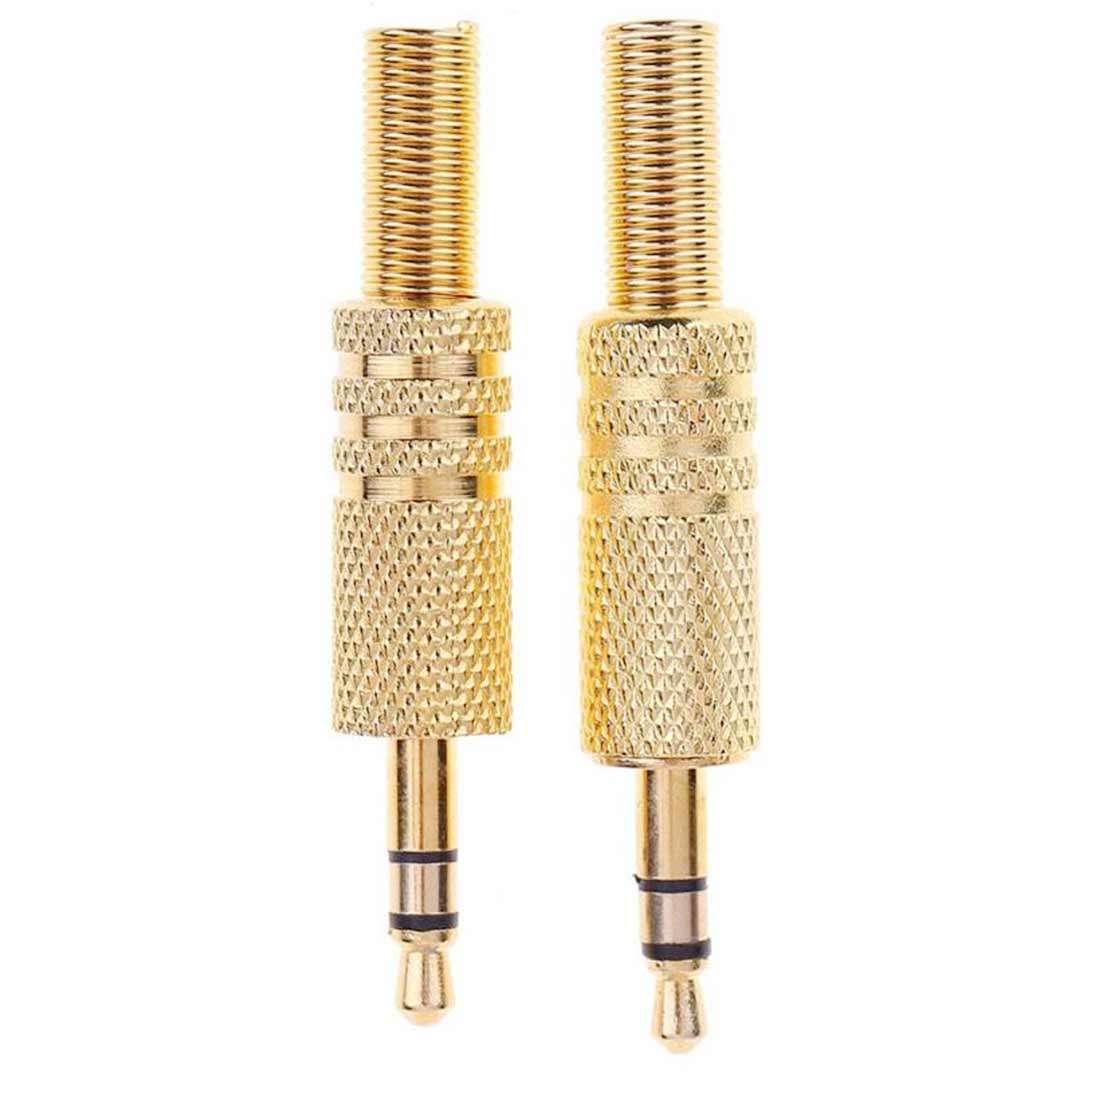 2pcs-35-stereo-dual-channel-headphone-plug-audio-small-three-core-plug-35-headphone-plug-35-welded-type-stereoconverter